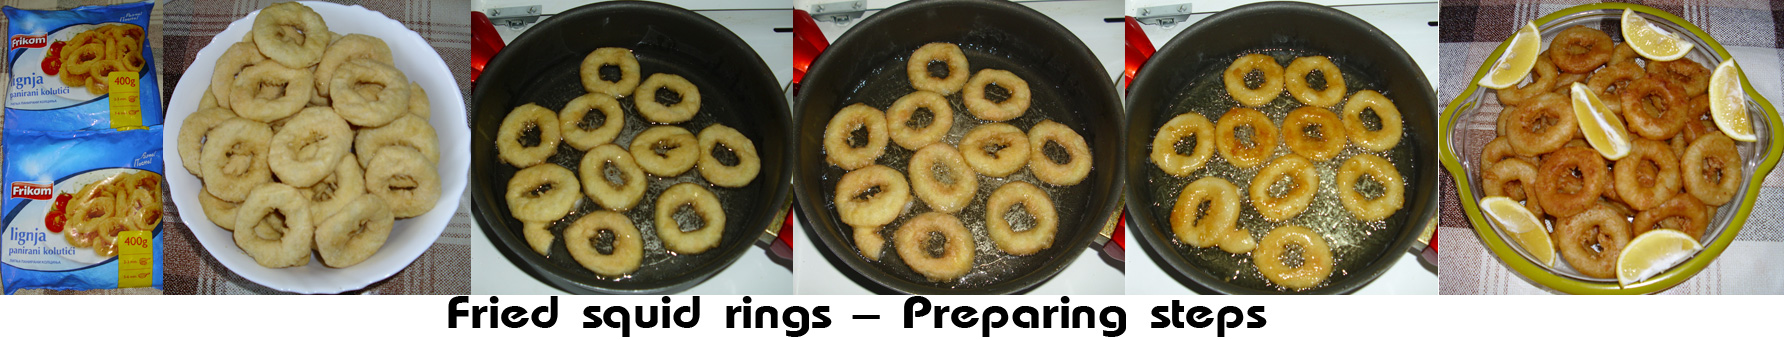 Fried squid rings - Preparing steps 1